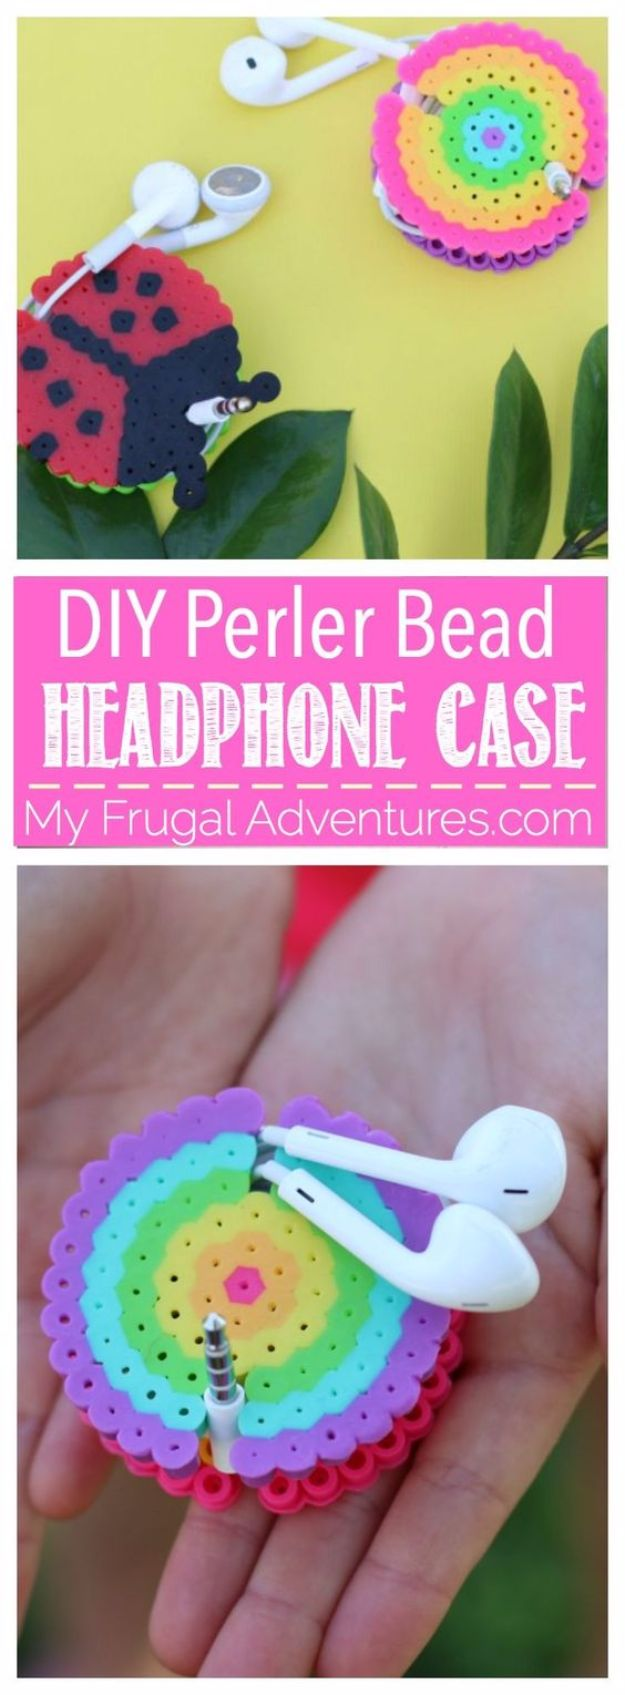 Best DIY Ideas for Teens To Make This Summer - DIY Perler Bead Headphone Case - Fun and Easy Crafts, Room Decor, Toys and Craft Projects to Make And Sell - Cool Gifts for Friends, Awesome Things To Do When You Are Bored - Teenagers - Boys and Girls Love Making These Creative Projects With Step by Step Tutorials and Instructions http://diyprojectsforteens.com/best-ideas-teens-summer